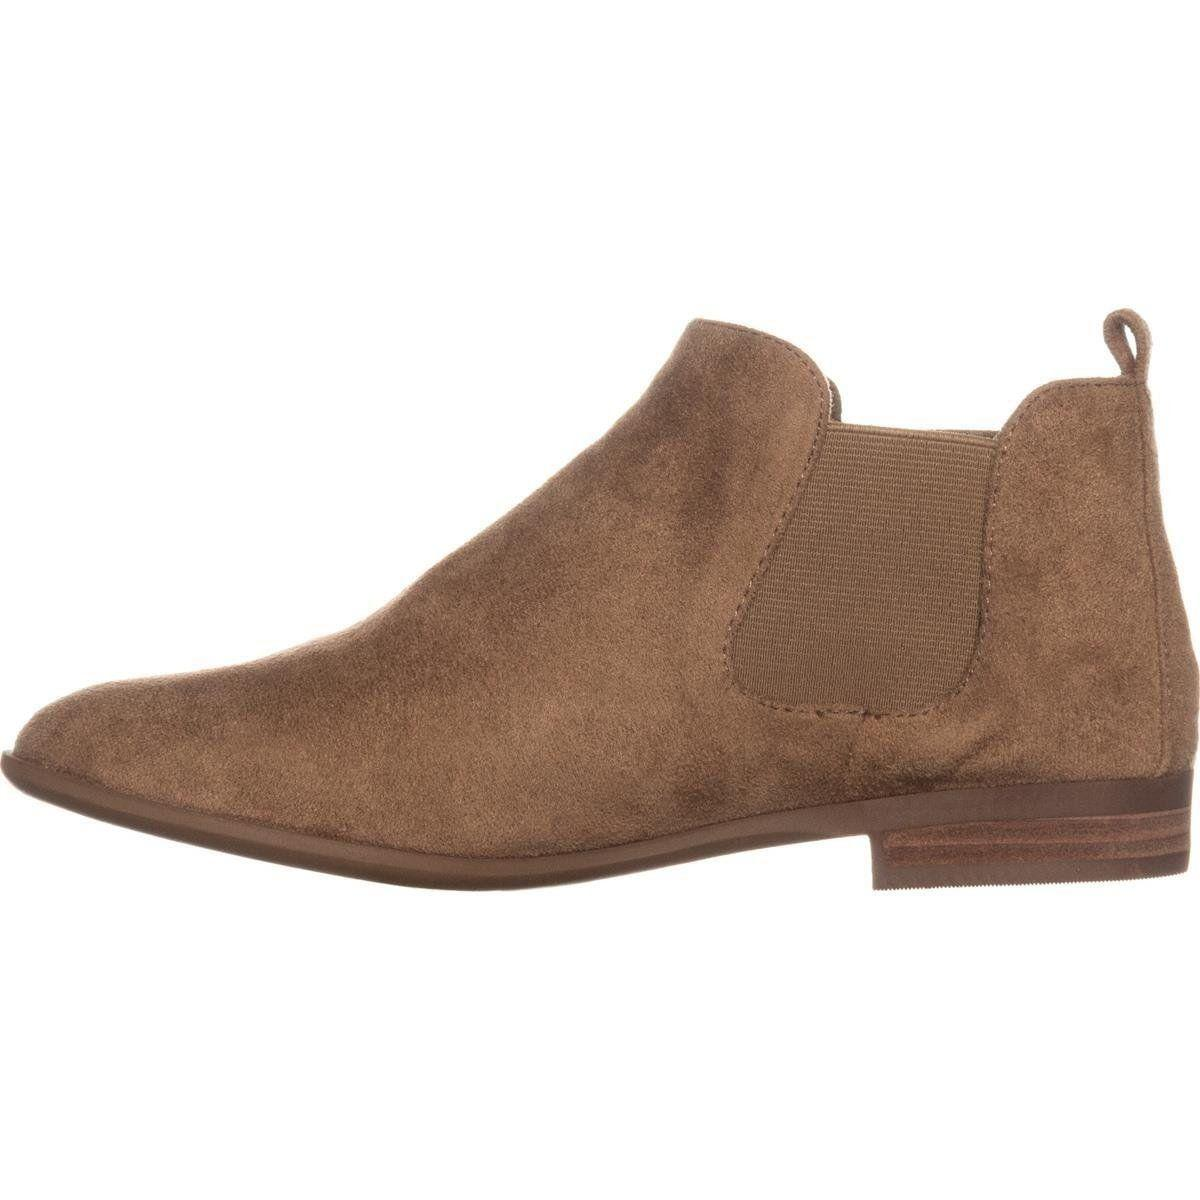 b2cc424747c Lyst - American Rag Womens Stansie Closed Toe Ankle Fashion Boots in ...